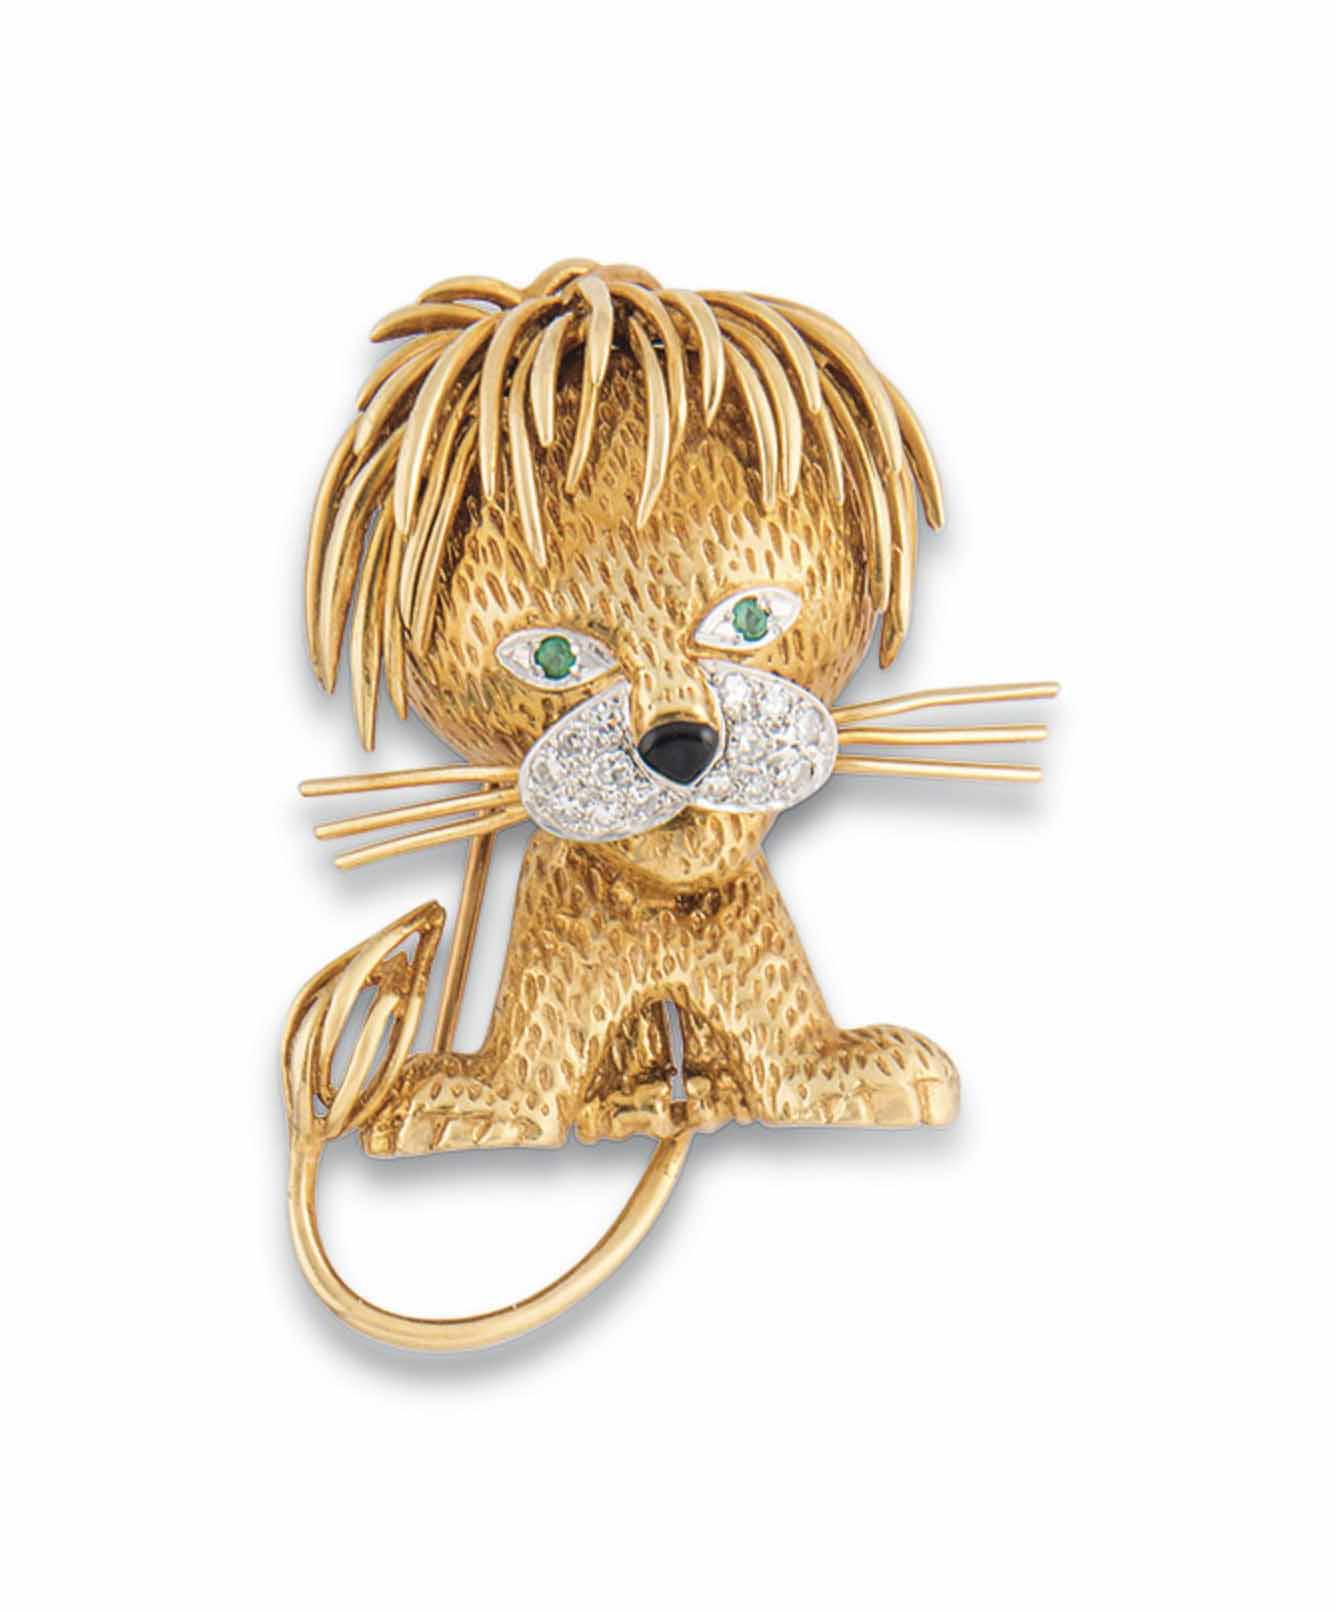 A GEM-SET LION BROOCH, BY VAN